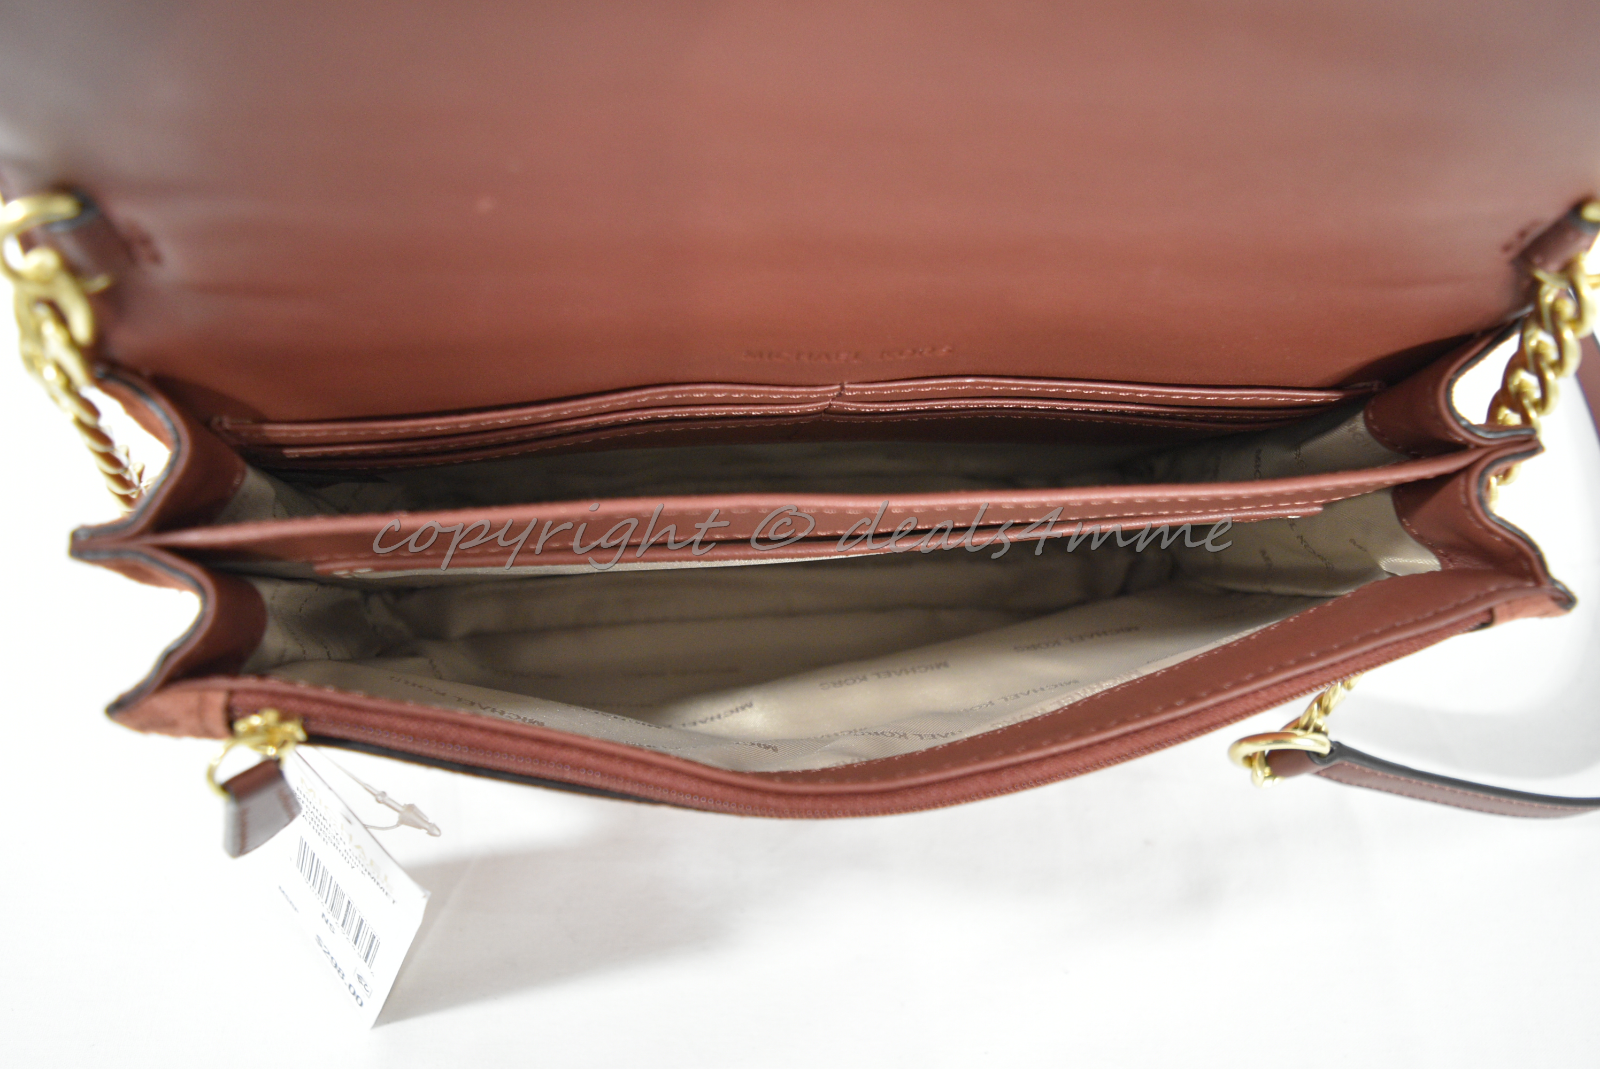 be74d268fe3e74 NWT Michael Kors Brooklyn Grommet Large Leather Suede Crossbody Bag in  Brick Red 7 7 of 12 ...